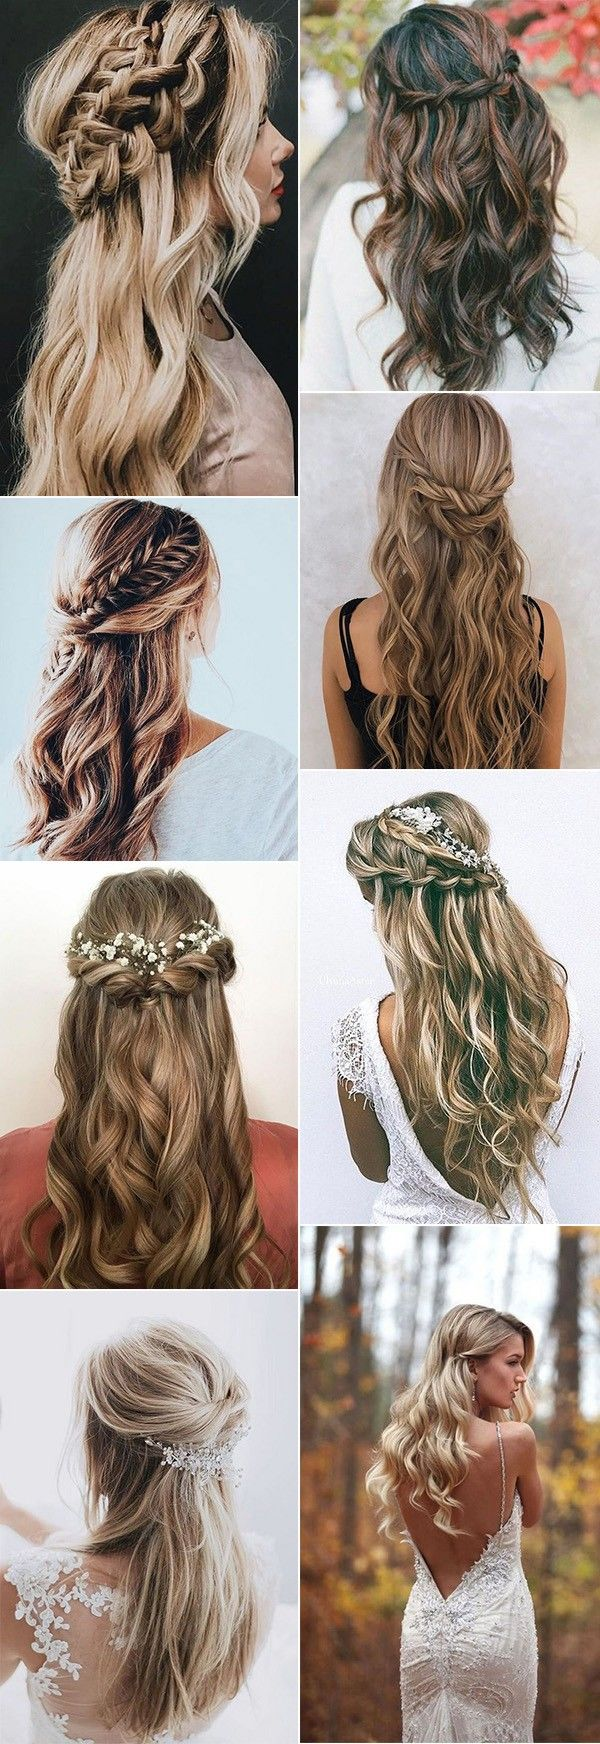 Top 20 Half Up Half Down Wedding Hairstyles For 2018 2019 Oh Best Day Ever In 2020 Wedding Hairstyles For Long Hair Braided Hairstyles For Wedding Half Up Hair